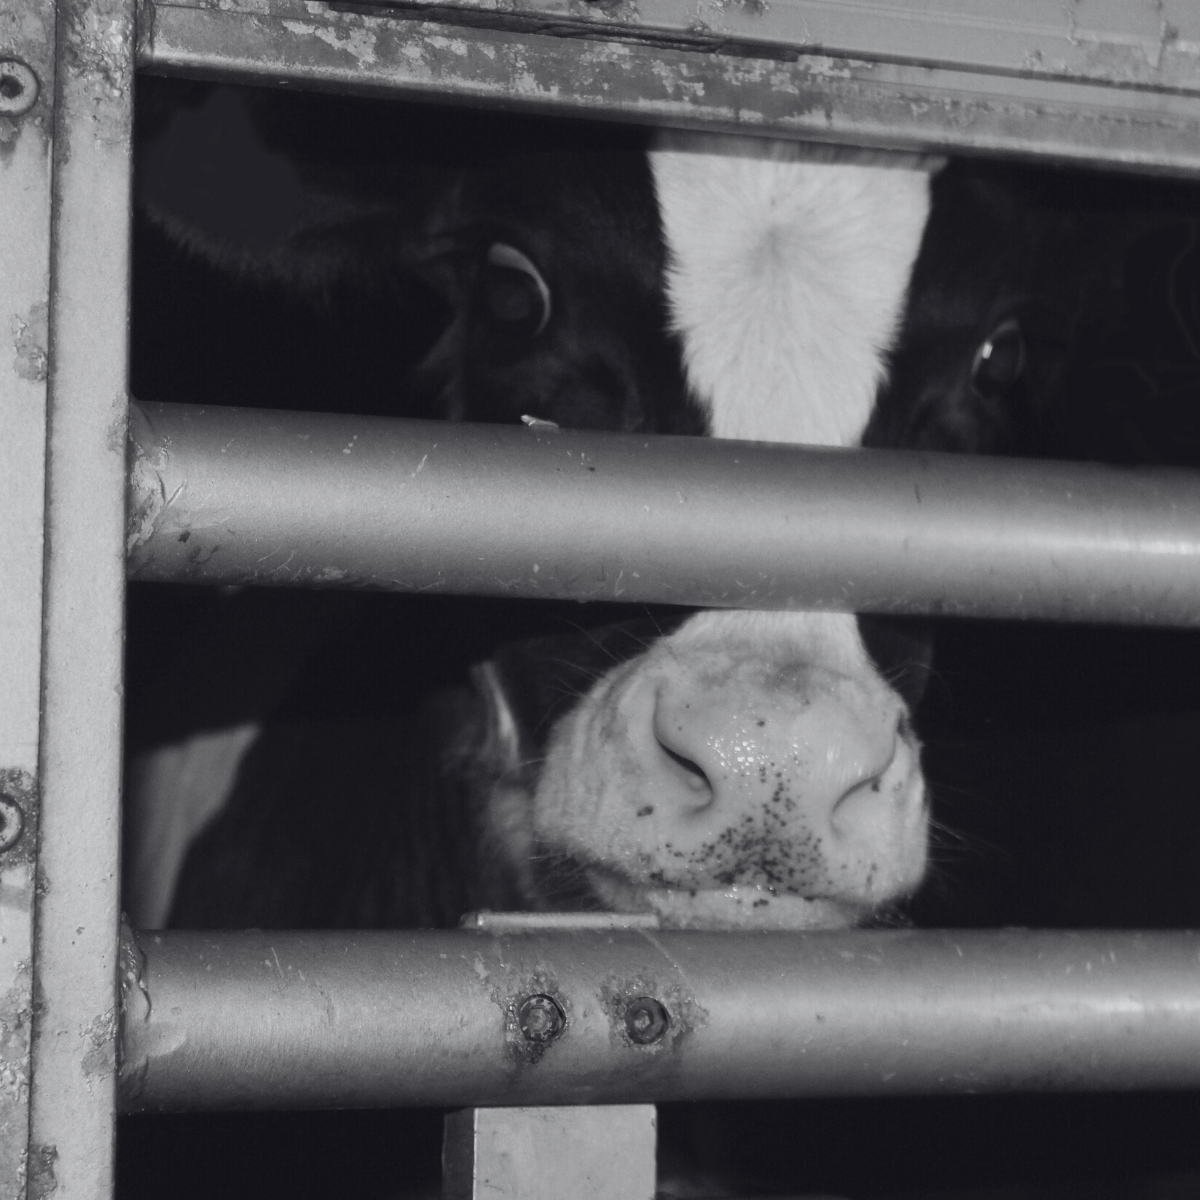 Scared cow in transport